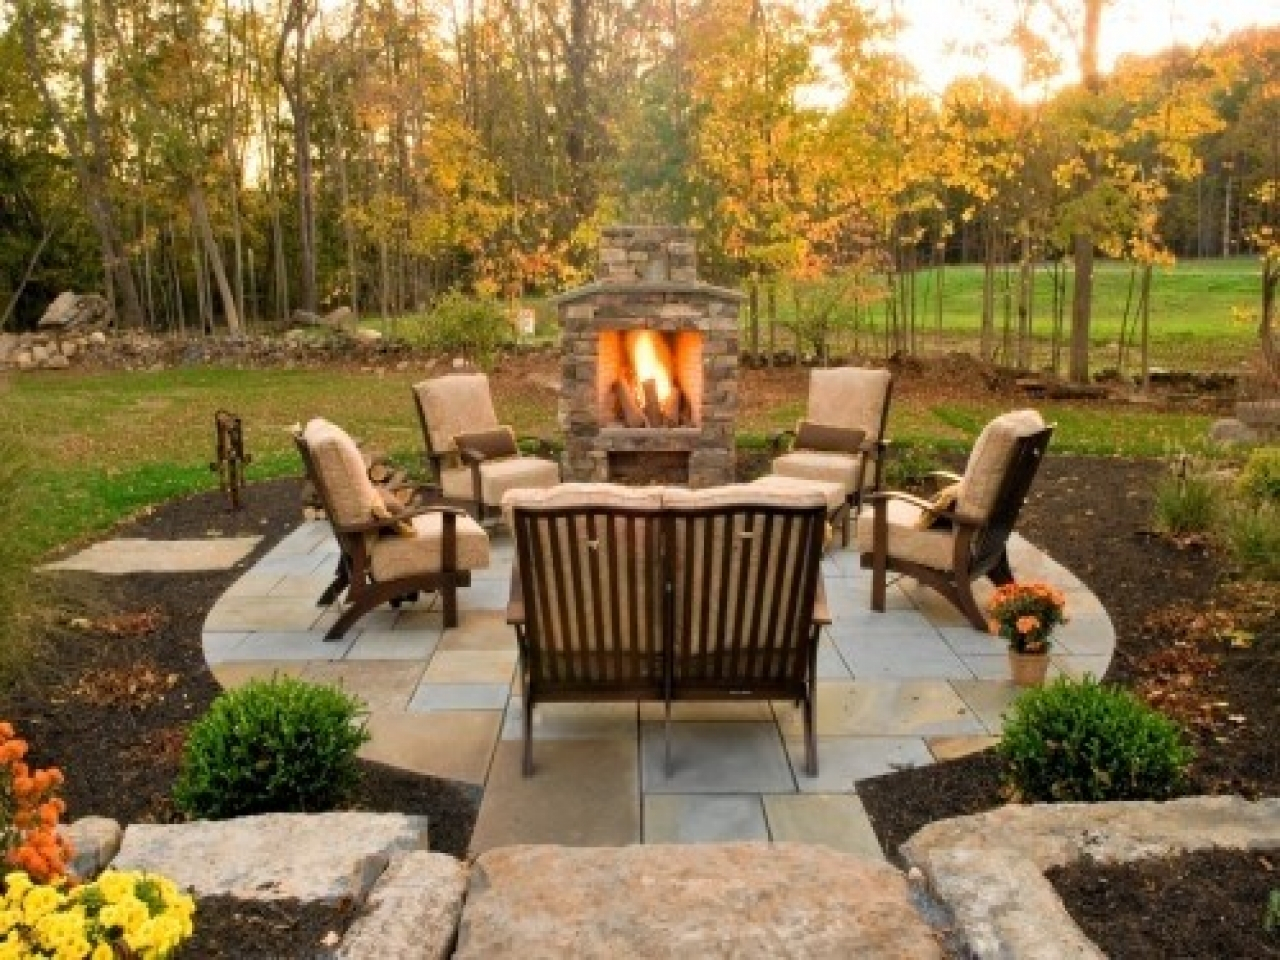 patio fireplace outdoor patio firepit, outdoor fireplace grill outdoor covered patio inside  outdoor XGEQIII